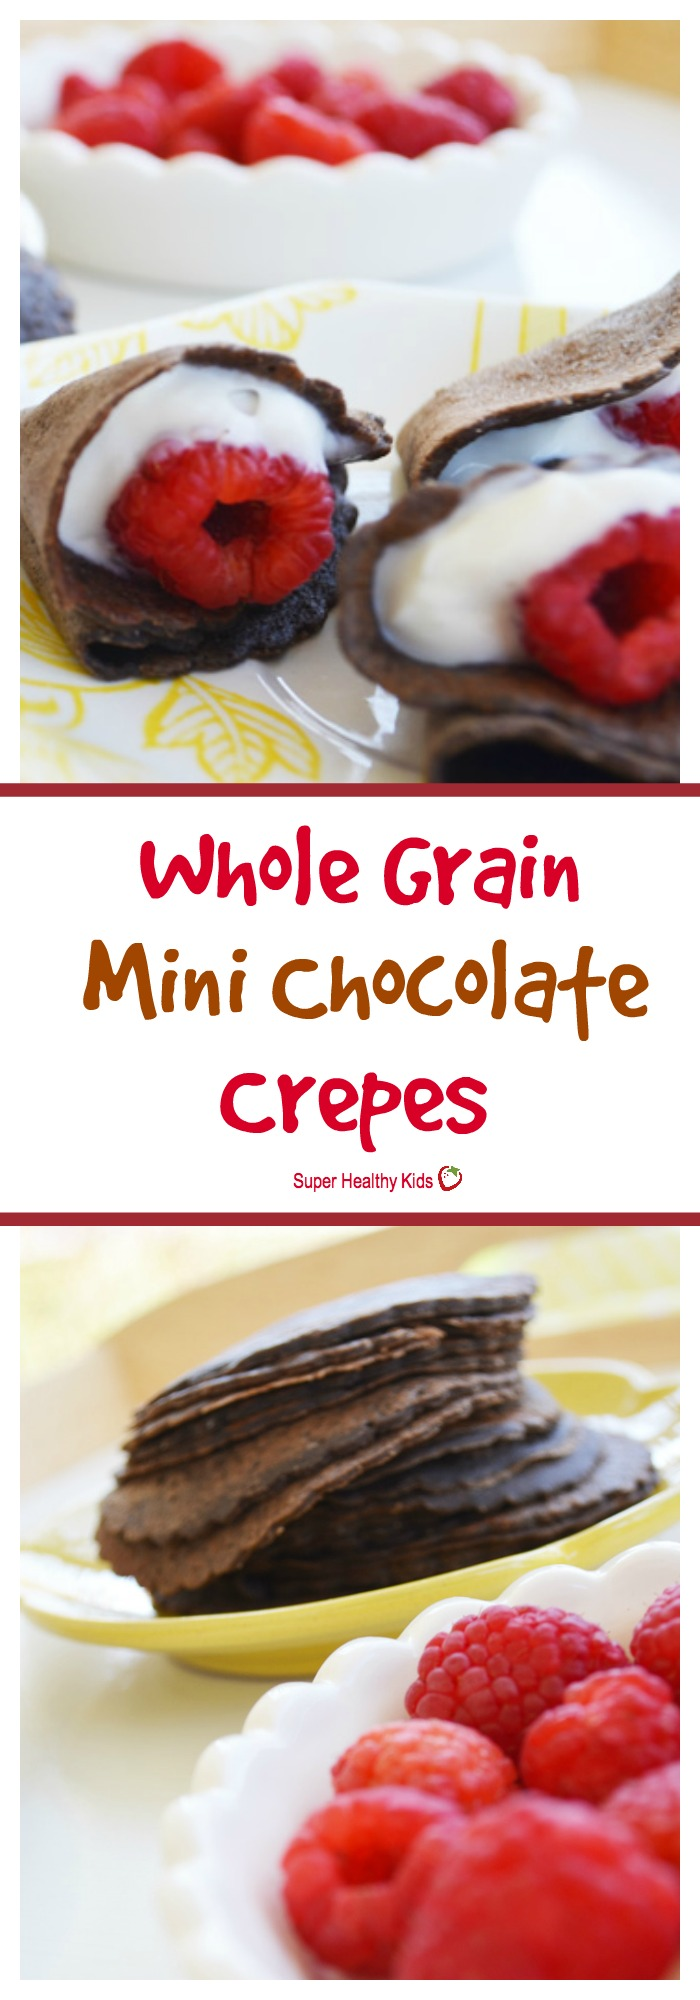 FOOD - Whole Grain Mini Chocolate Crepes. If your kids like chocolate, you can serve it up for breakfast! http://www.superhealthykids.com/whole-grain-mini-chocolate-crepes/